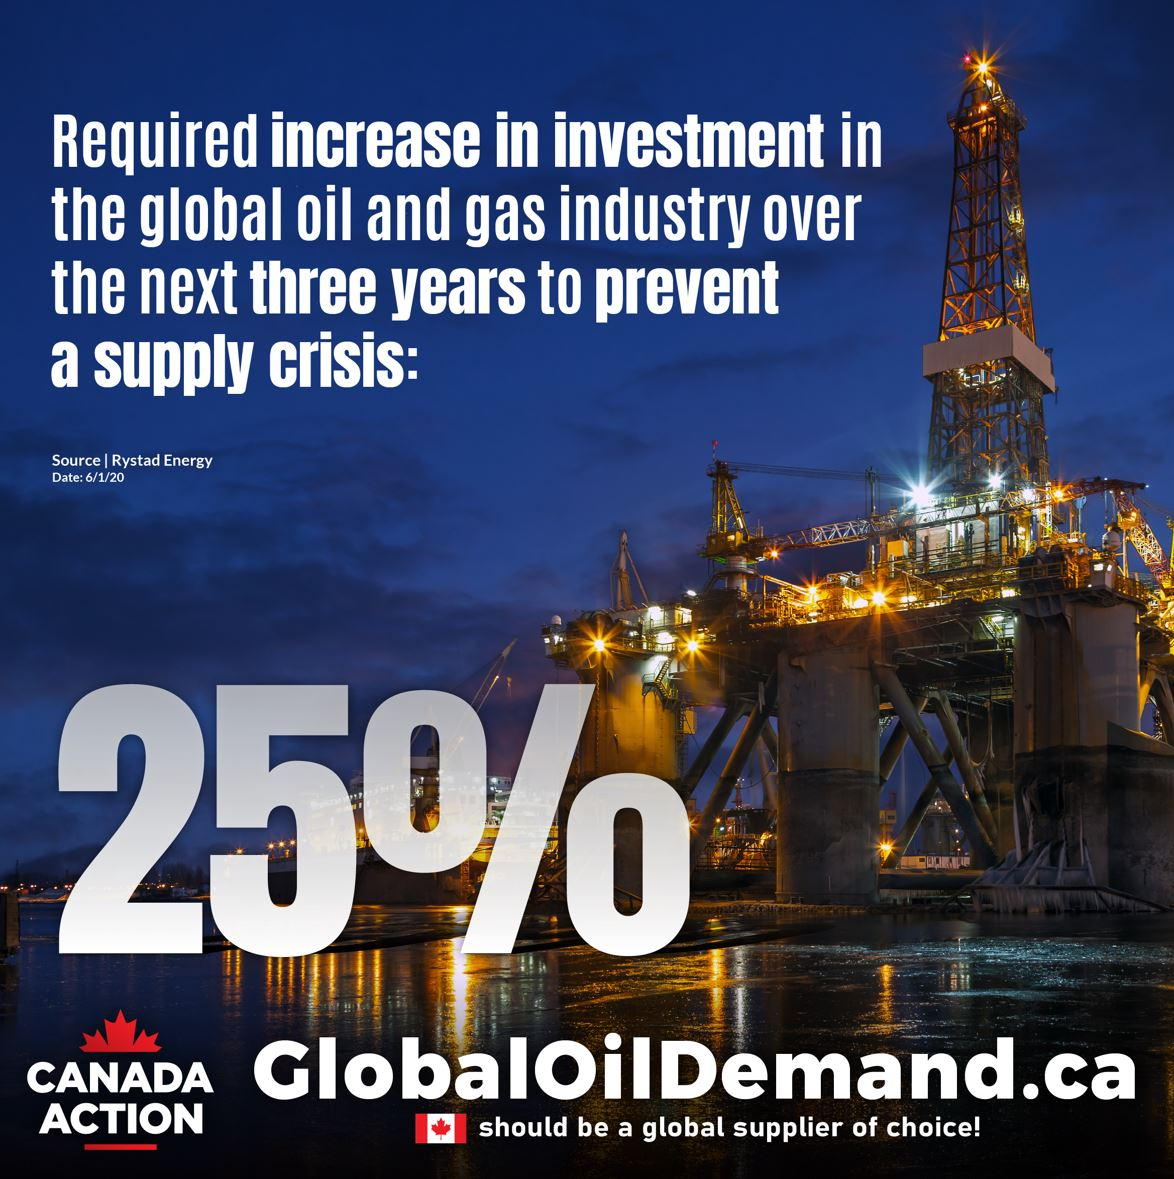 global energy crisis risk investment needed to prevent it